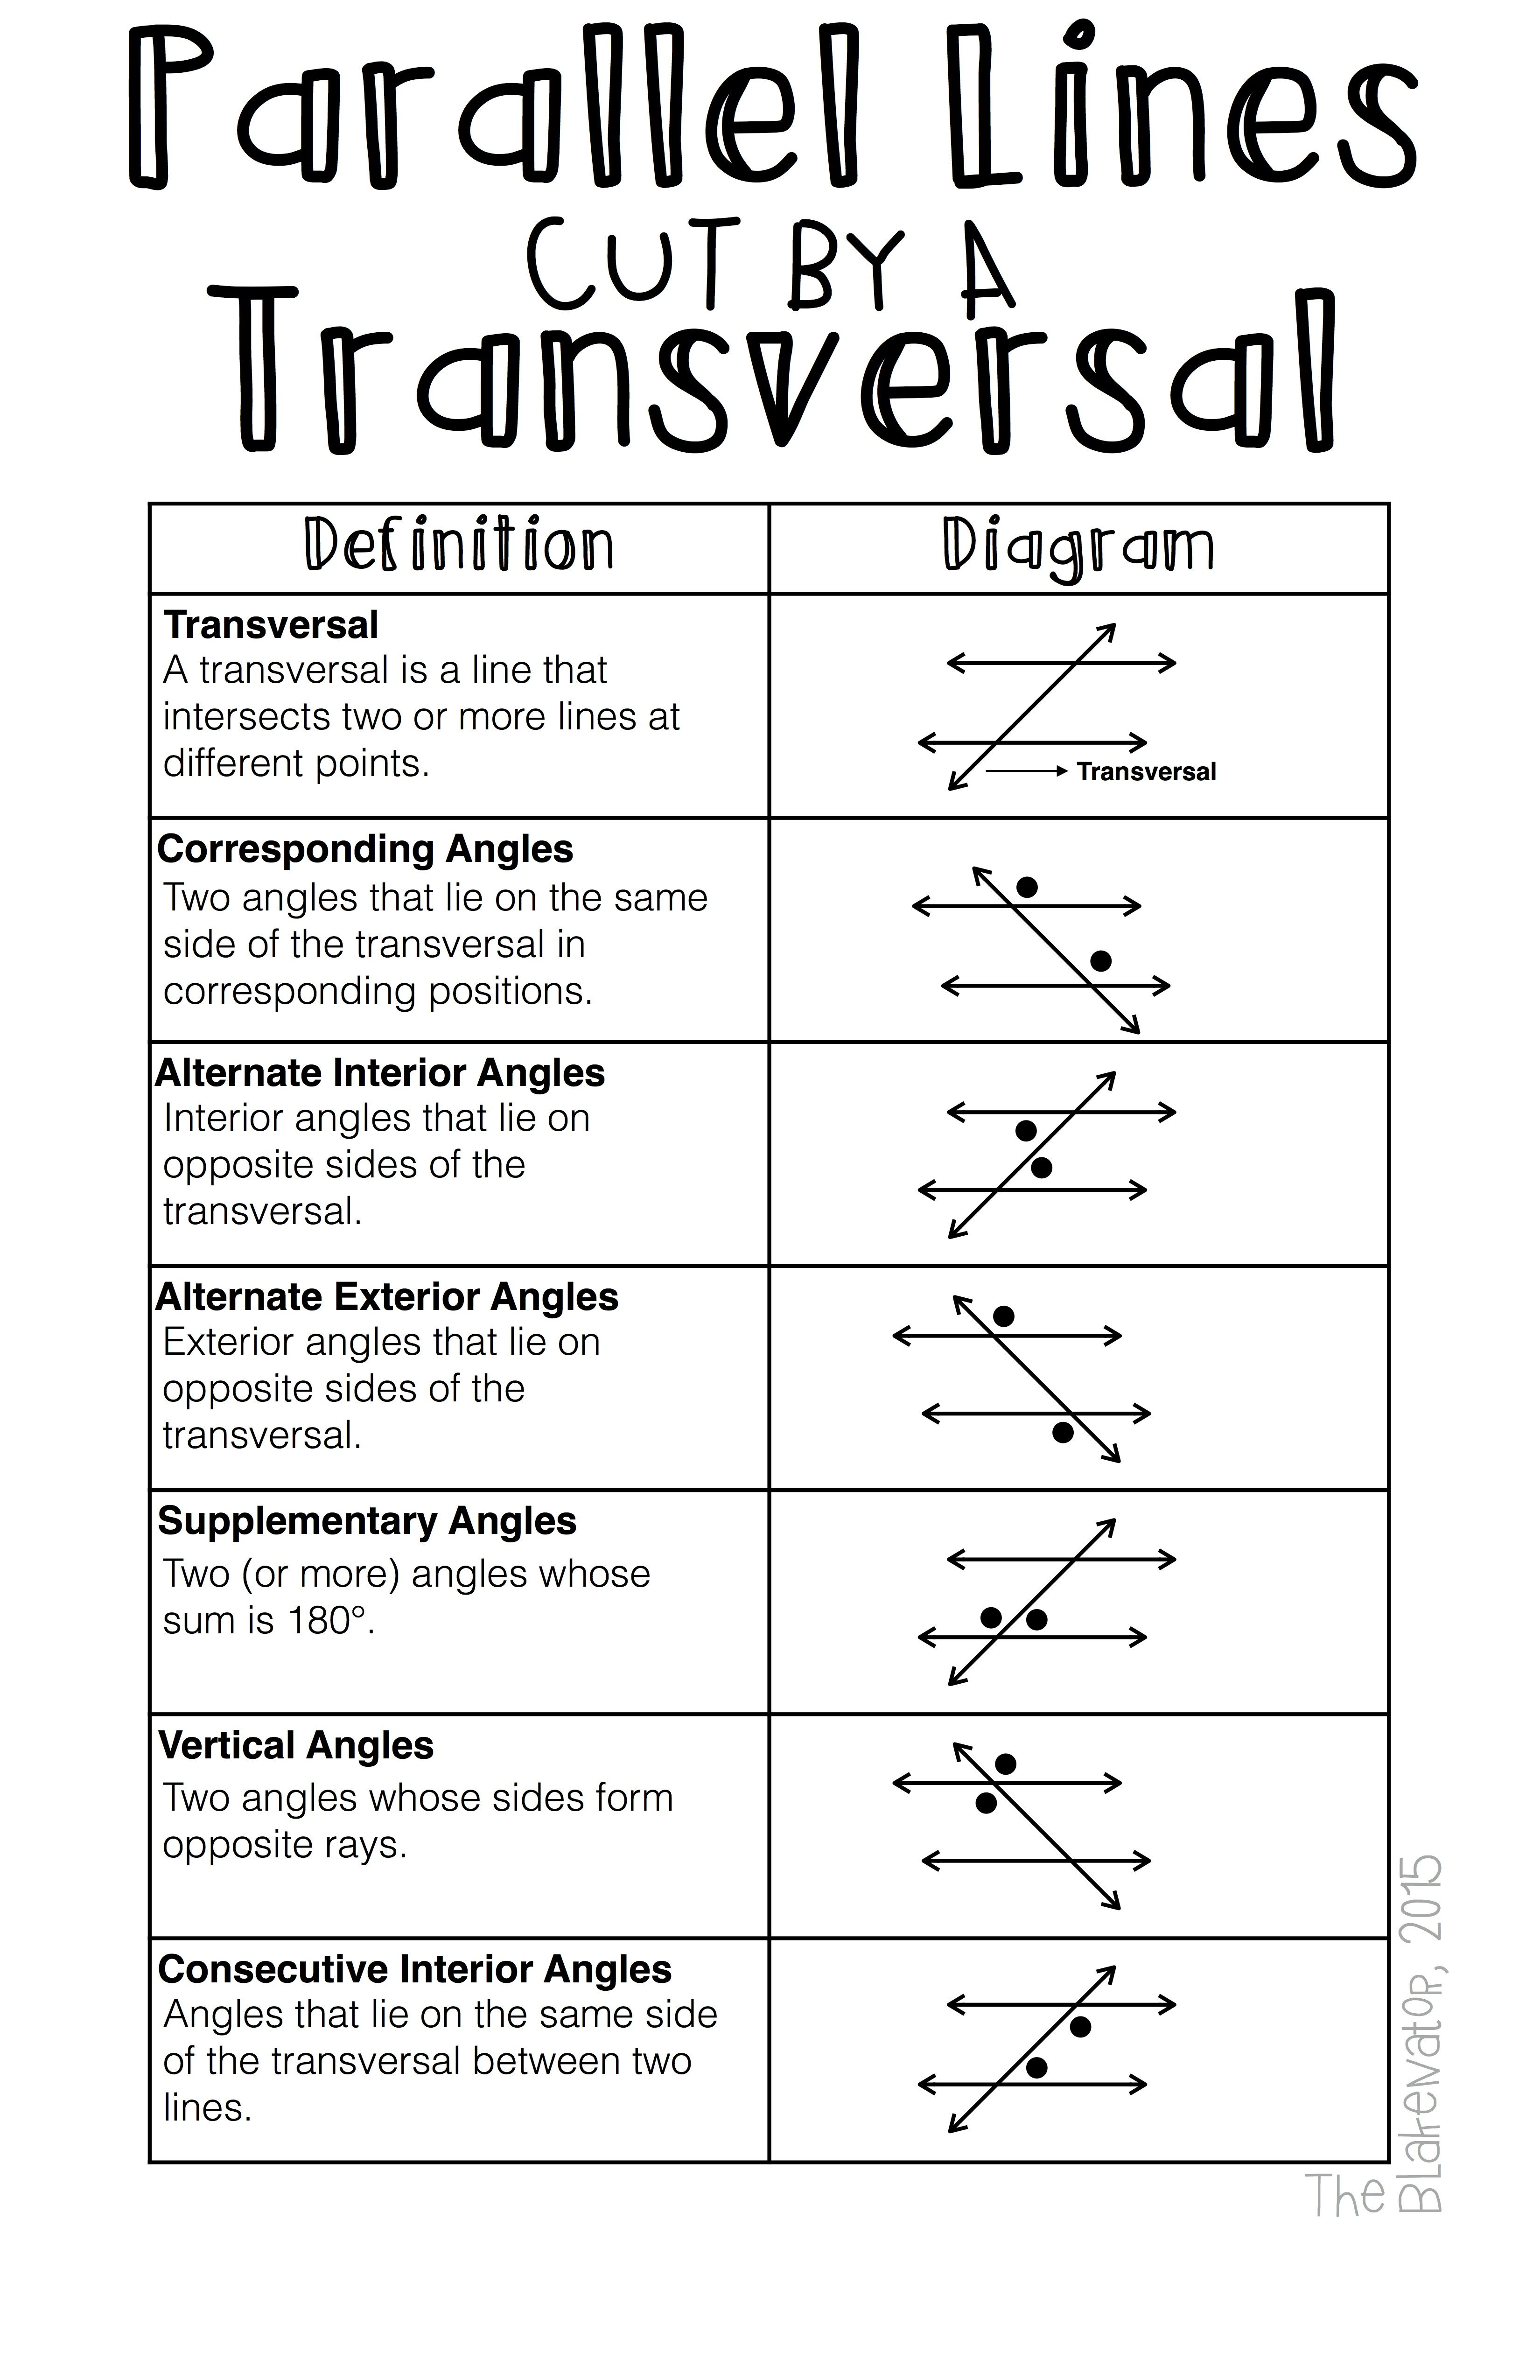 Free download increase math literacy in your classroom properties of parallel lines cut by transversals poster also  transversal geometry essentials rh sk pinterest